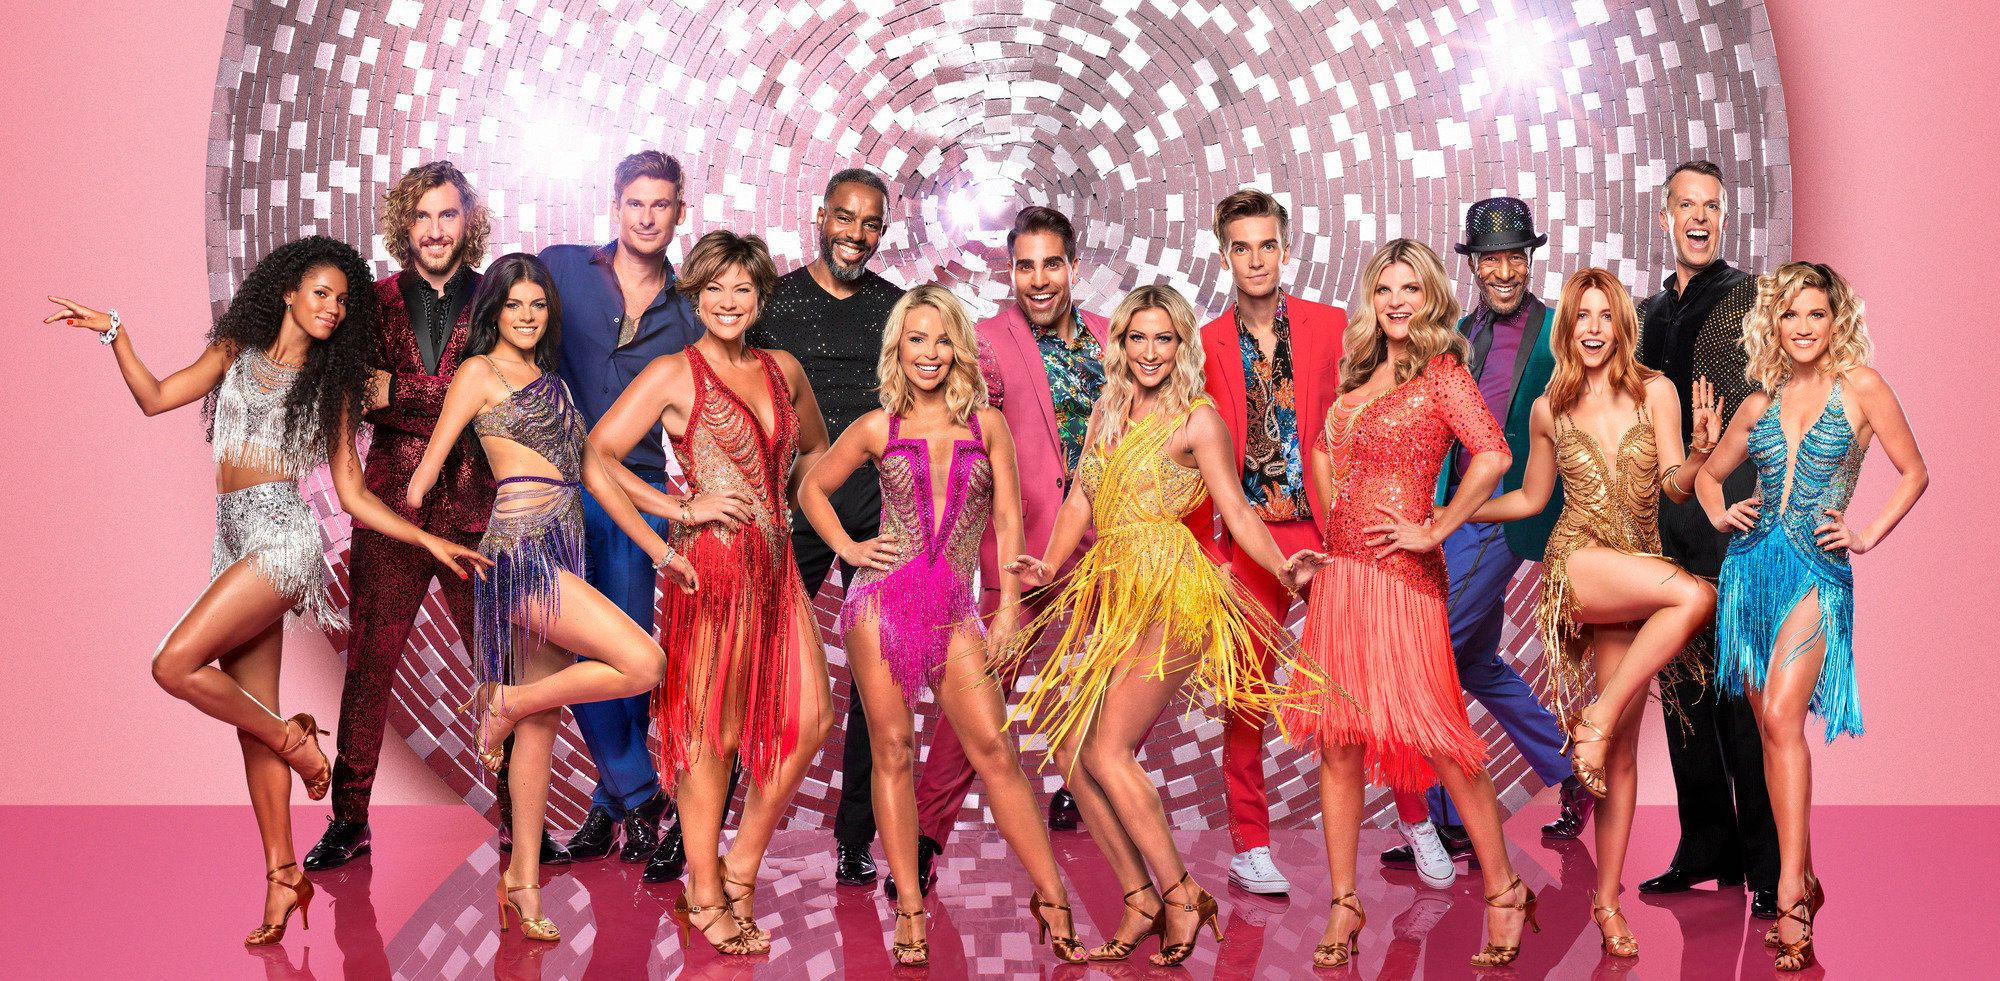 Here Are The Songs And Dances The 'Strictly' Stars Will Be Performing As The Competition Kicks Off